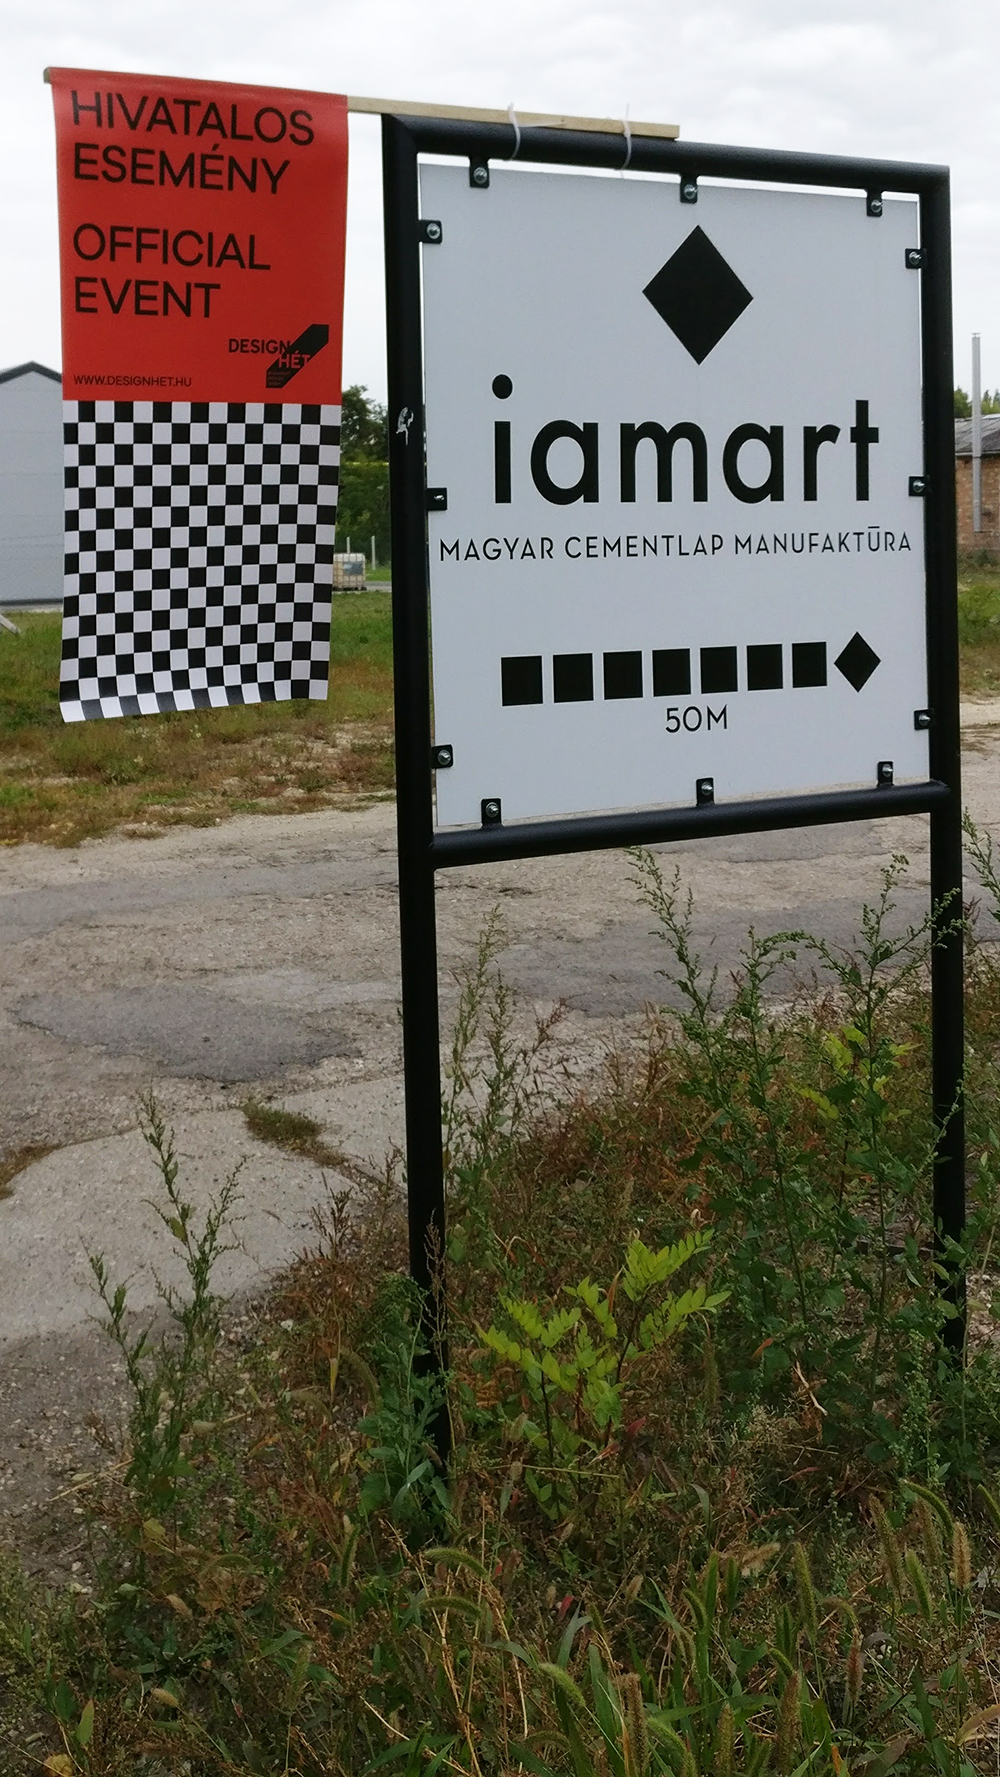 iamart Cement Tile Manufacturer | Budapest Design Week 2017